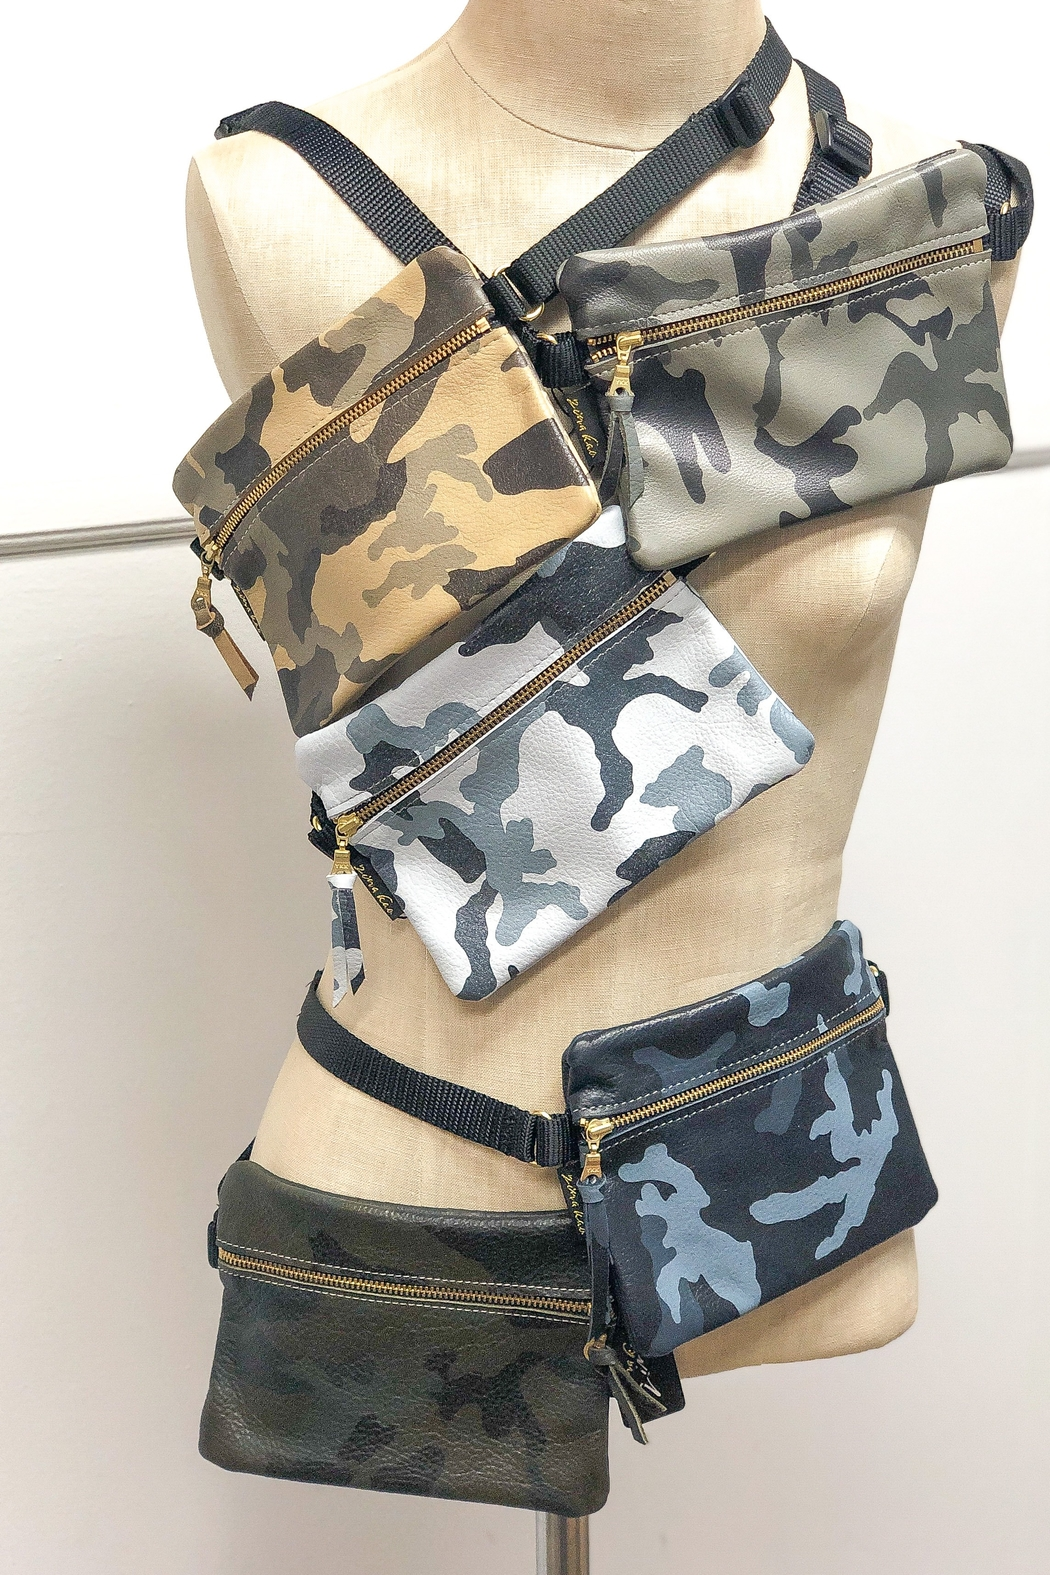 Zina Kao Camo Leather Hip Bags - Front Cropped Image